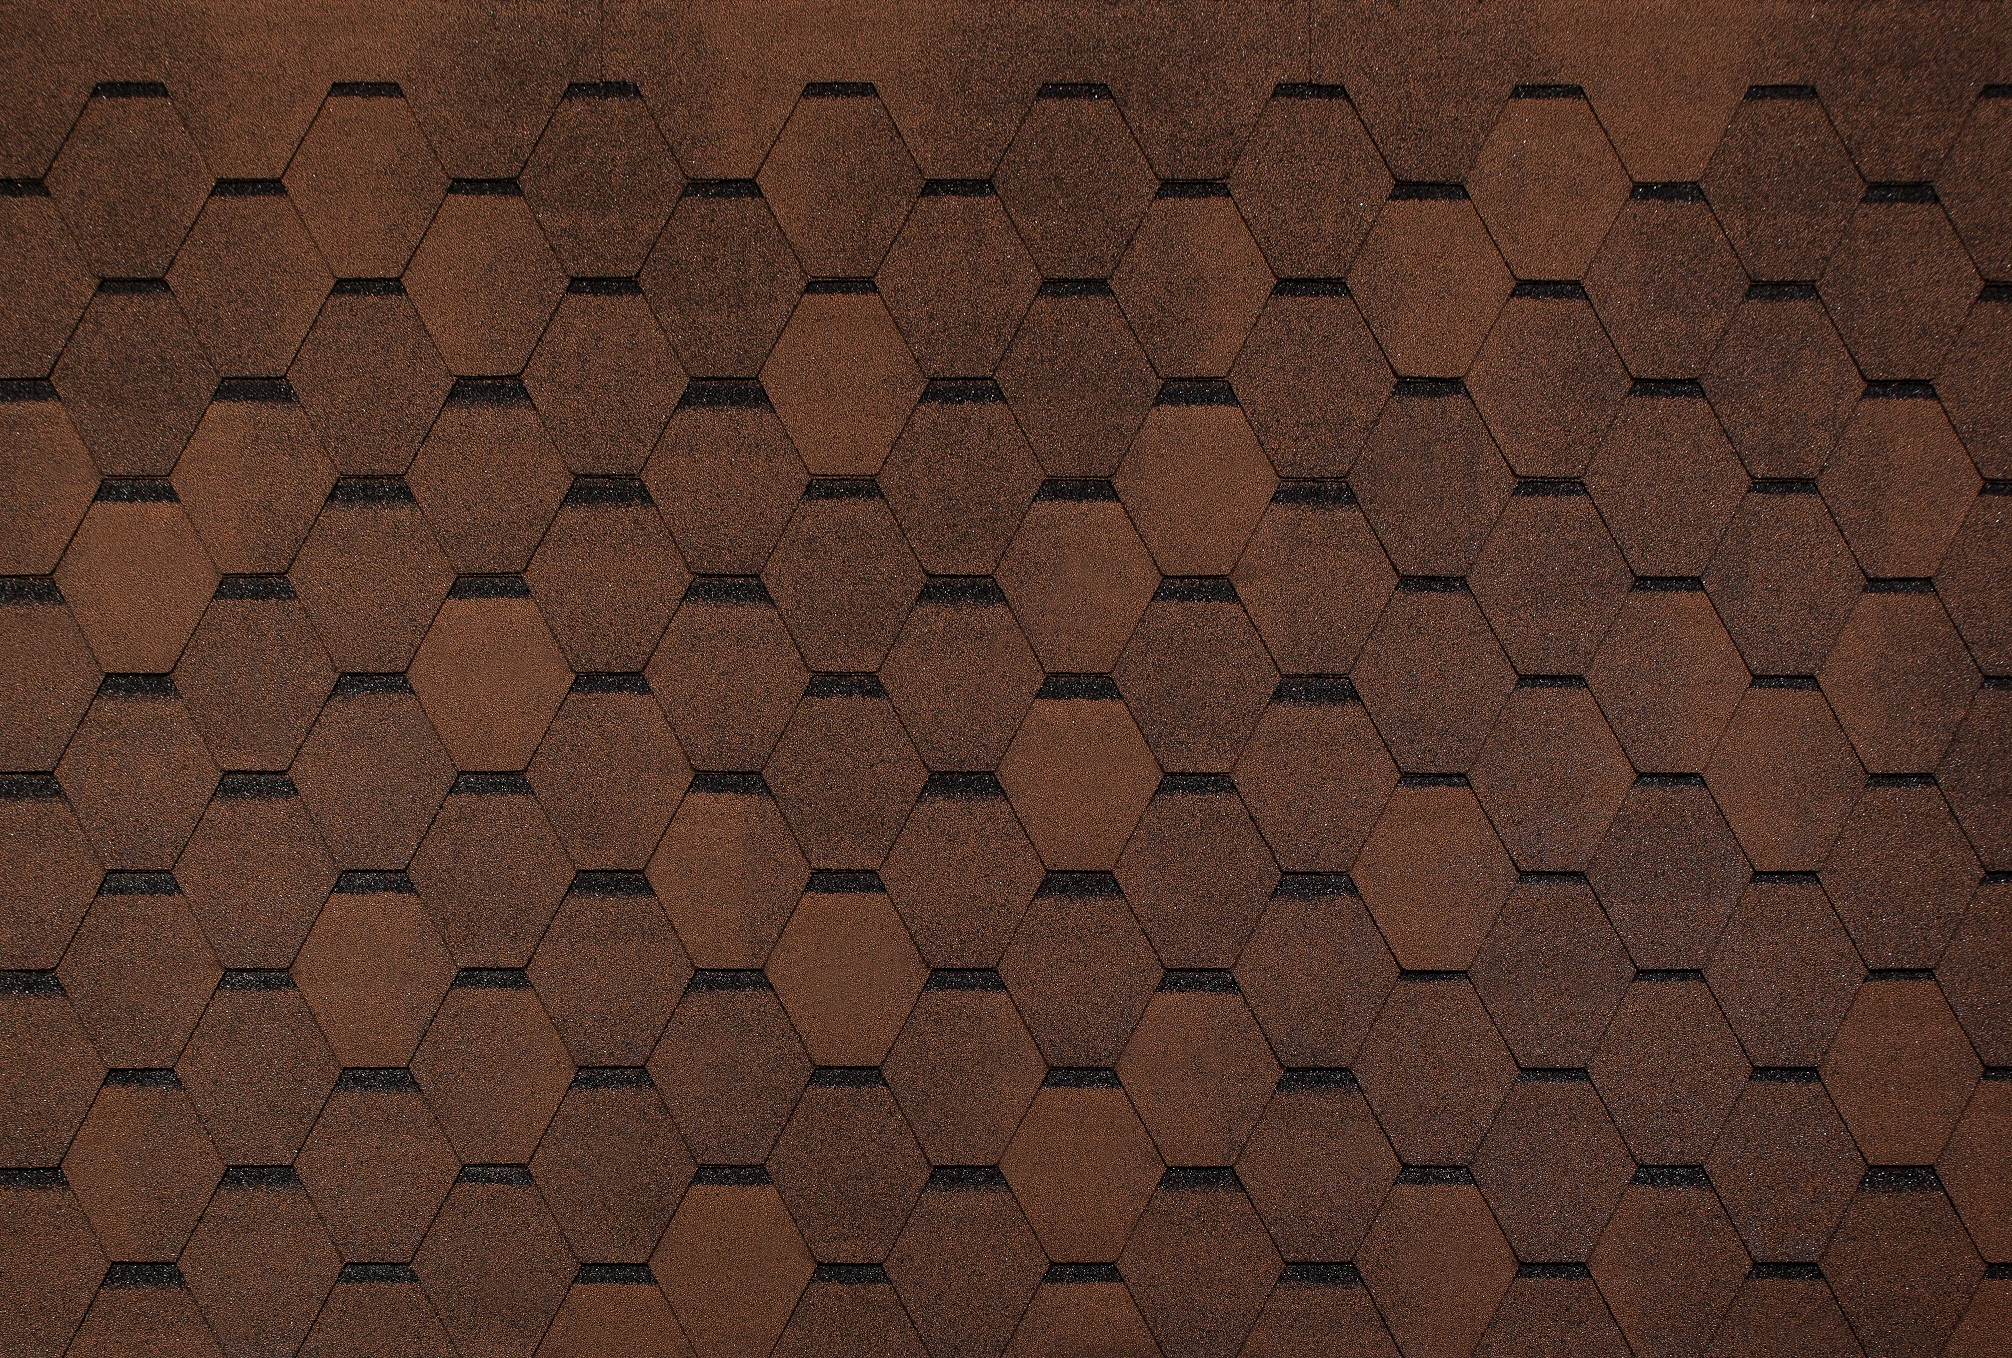 hexagonal  brown.jpg